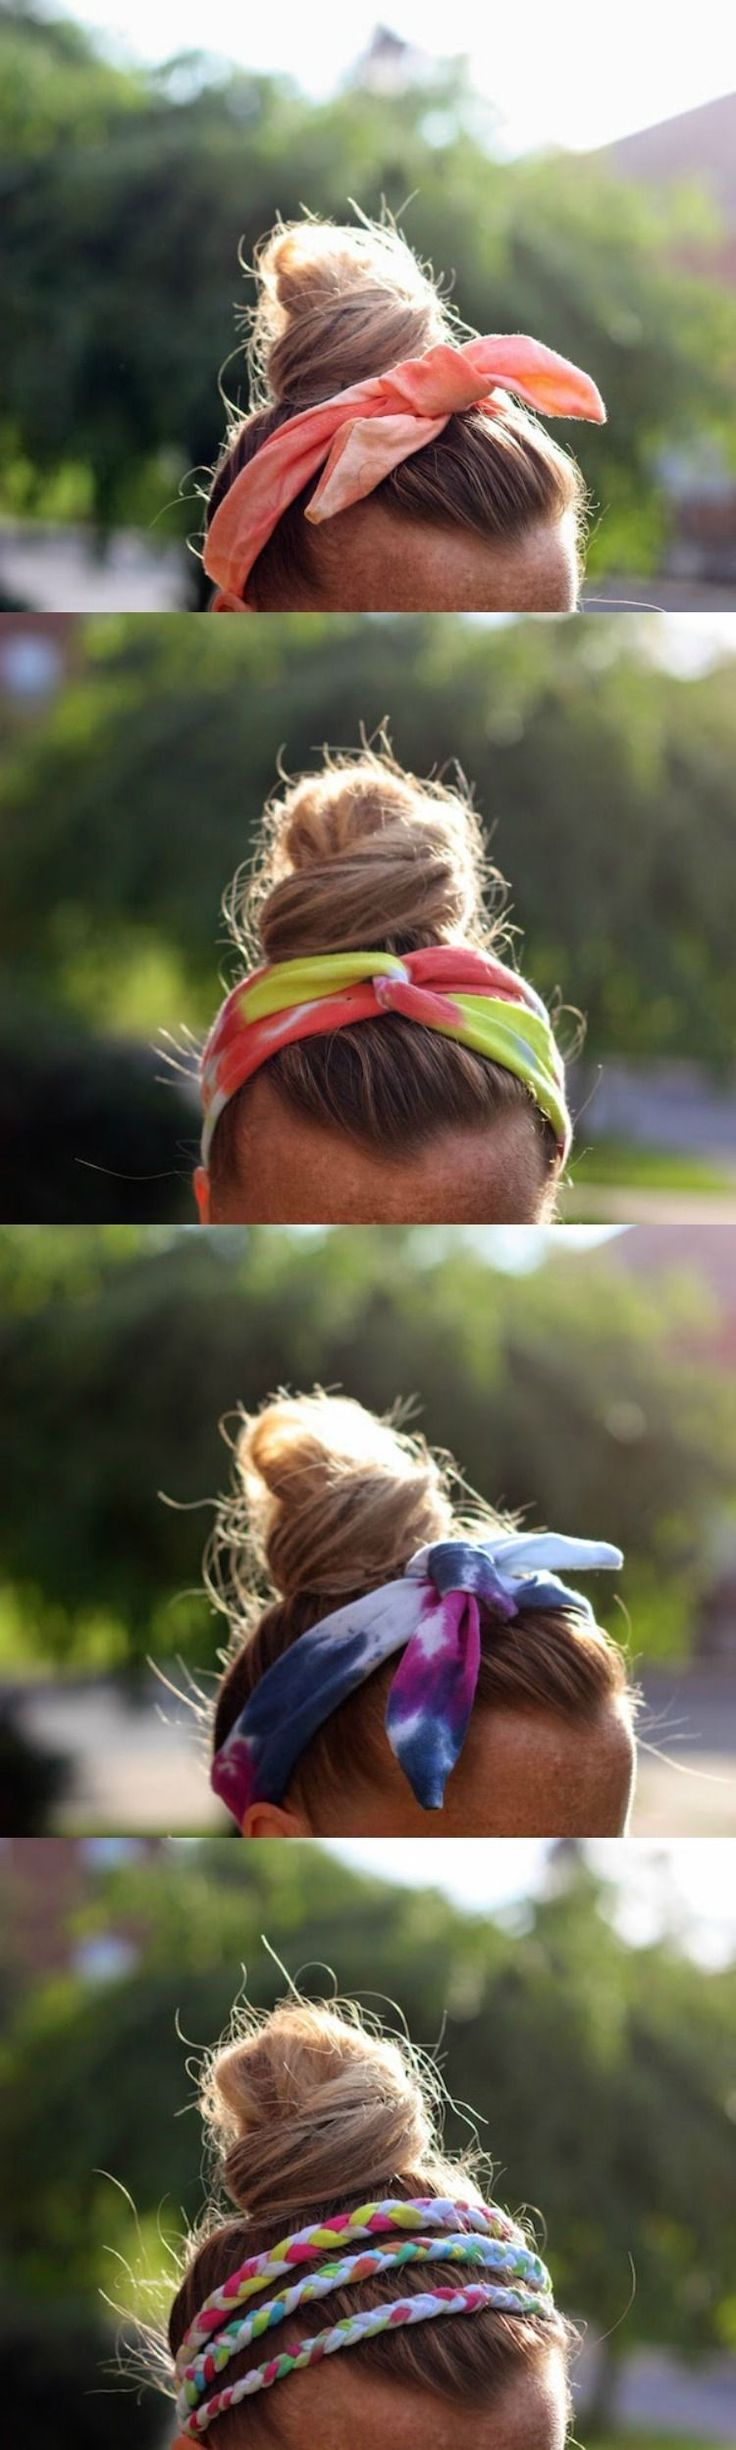 If you need some simple summer fashion ideas, these DIY tie dye headbands are easy to make from t-shirts and look great! #diyshirtssummer